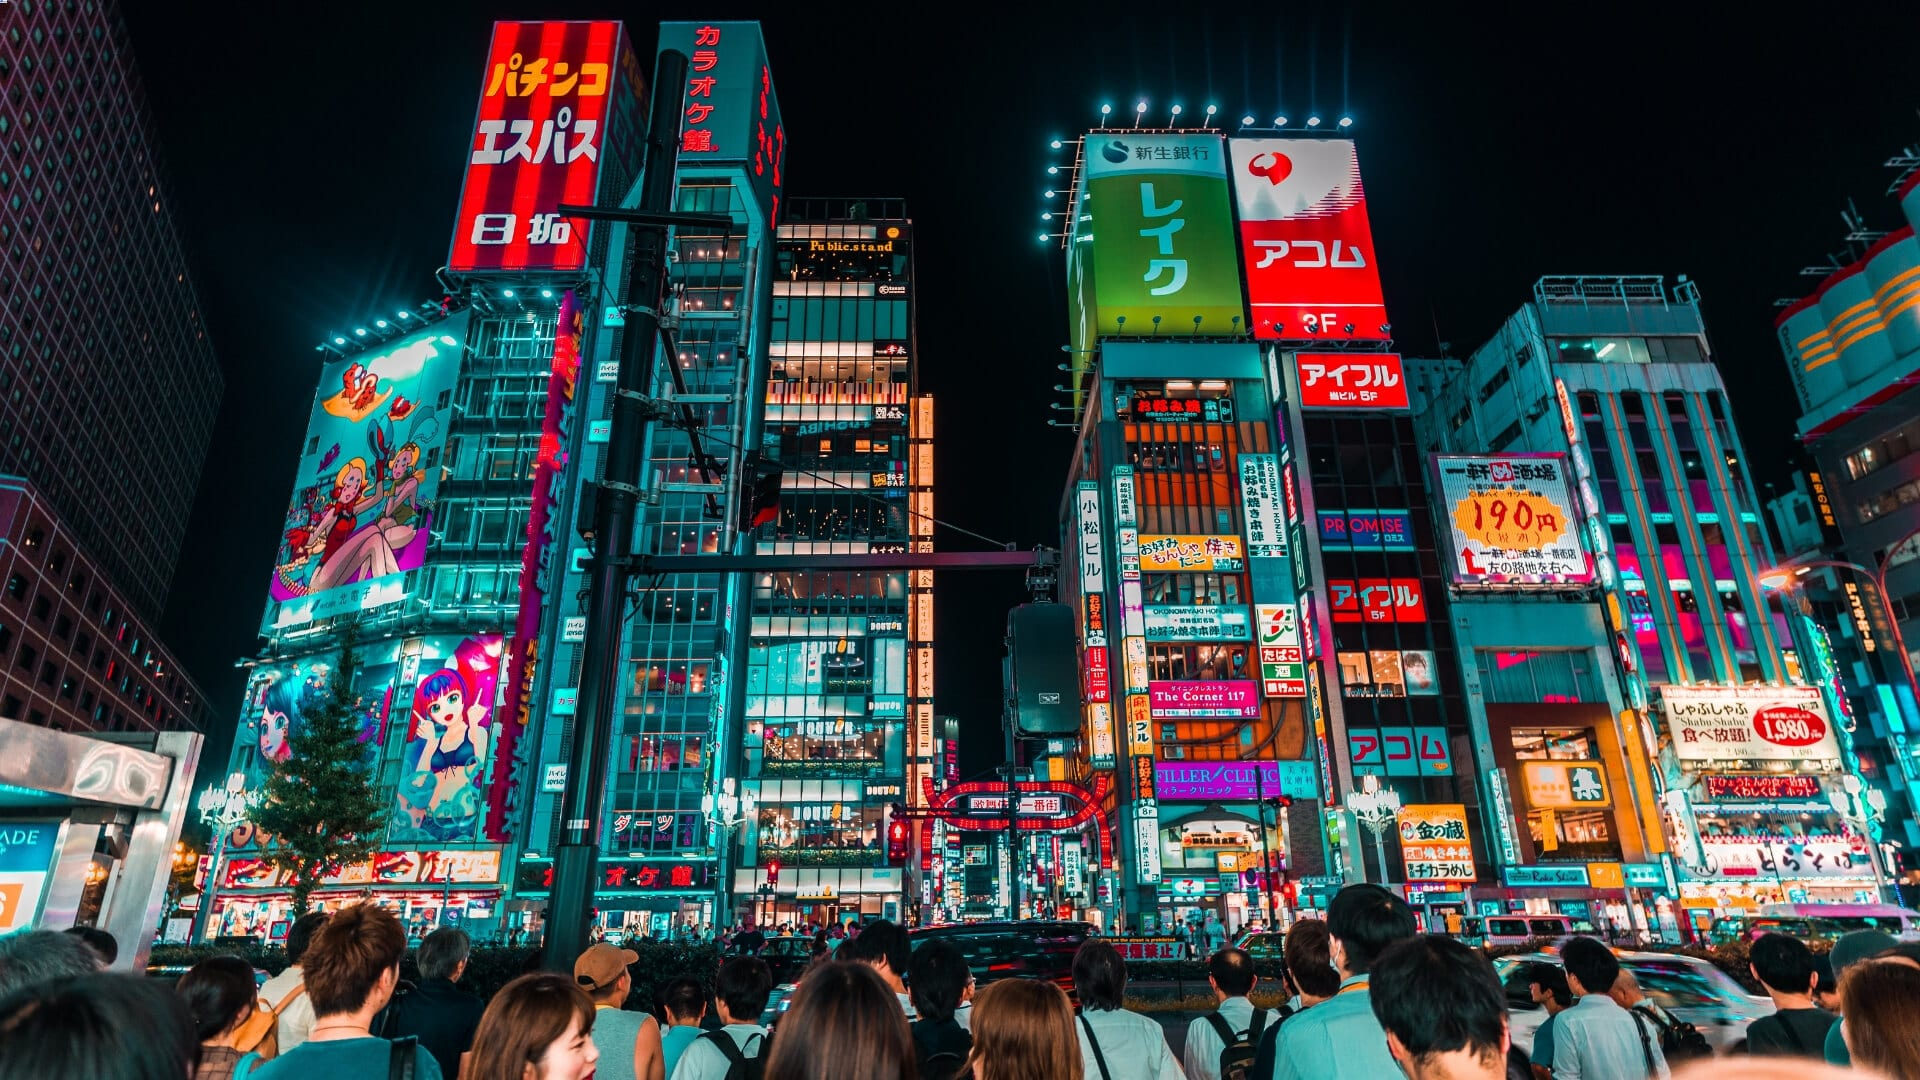 Many people are standing in front of high illuminated buildings in Tokyo.